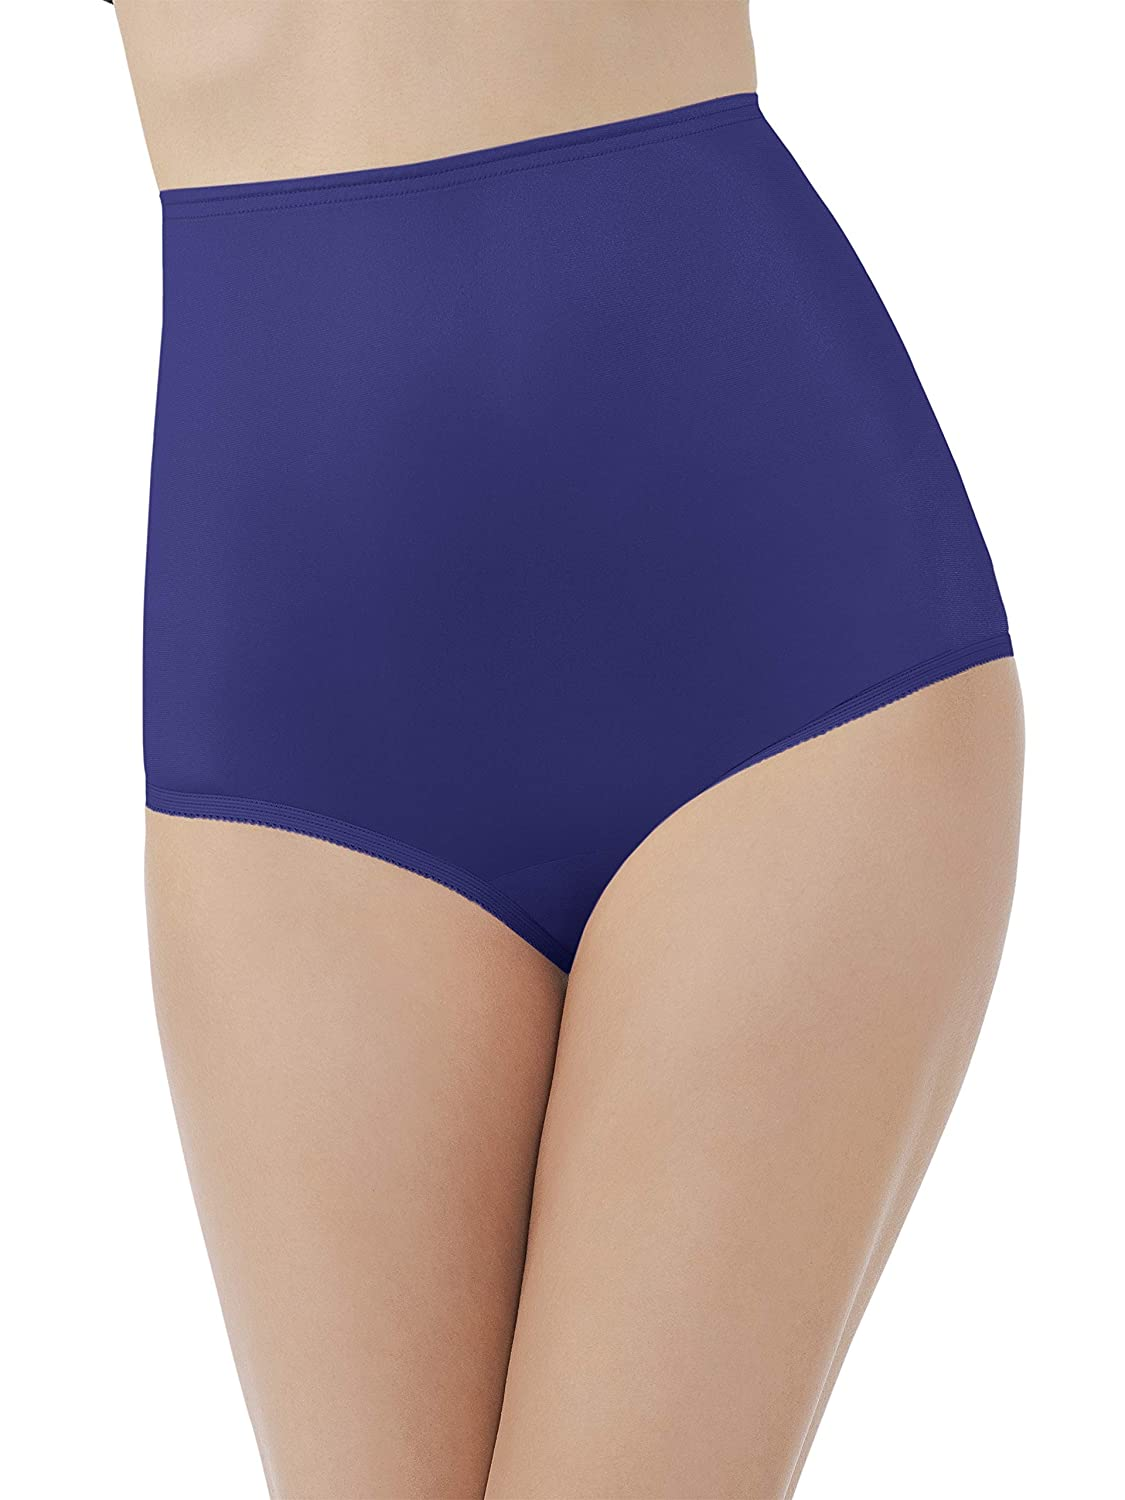 Vanity Fair Women's Perfectly Yours Ravissant Nylon Brief Panties #15712